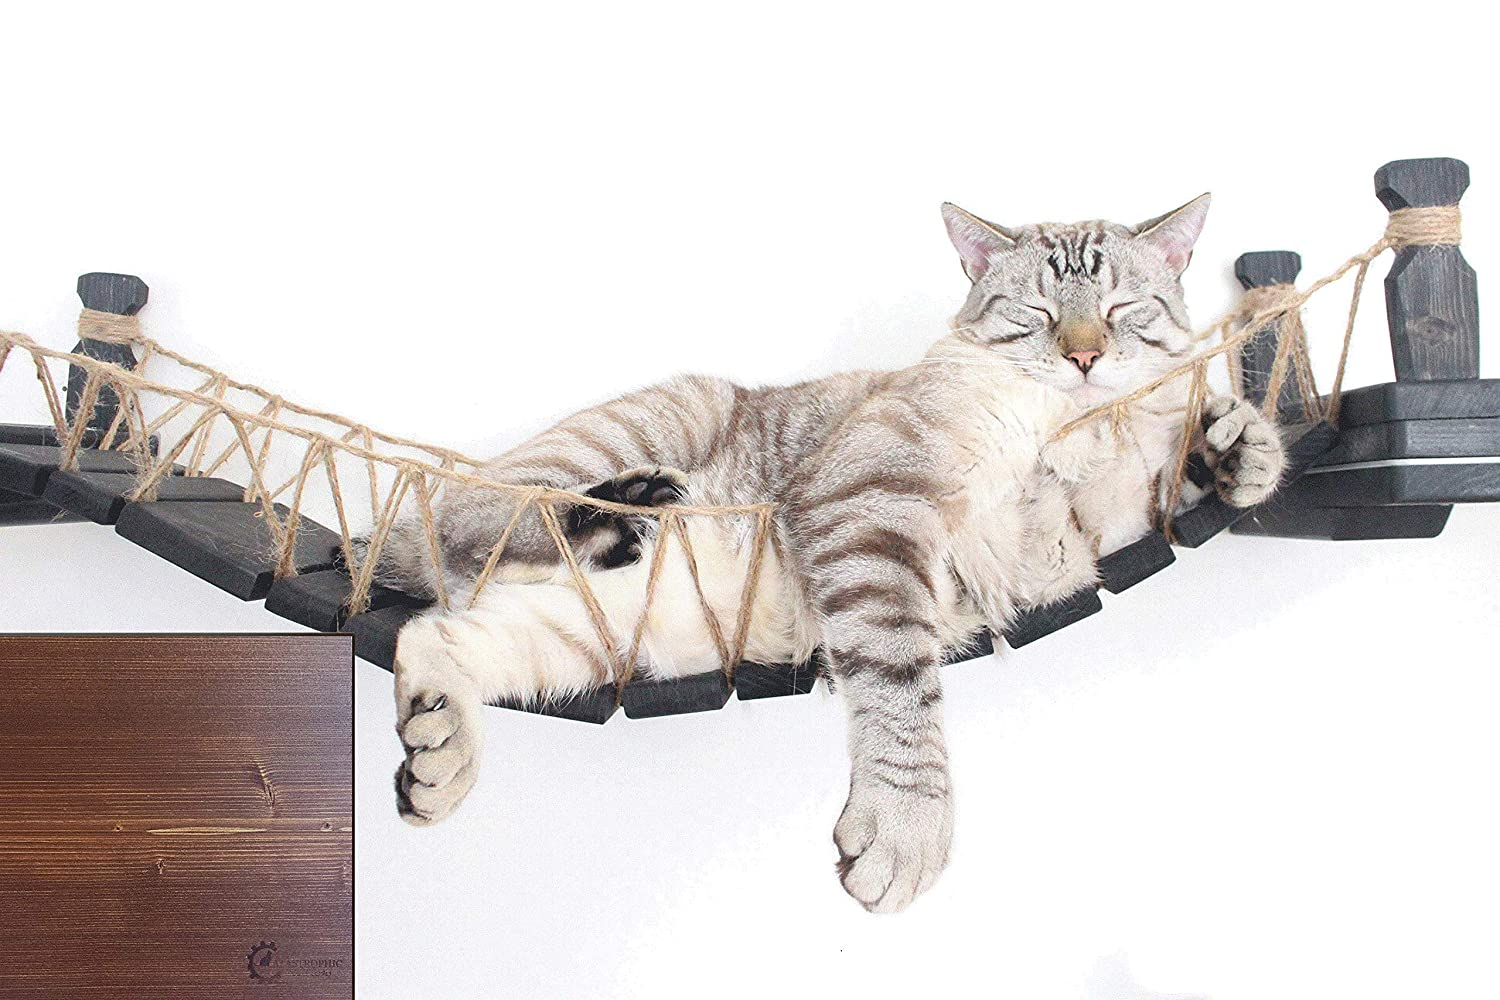 English Chestnut stain The Cat Mod Wall-Mounted Wooden Cat Bridge for Cats to Play and Lounge